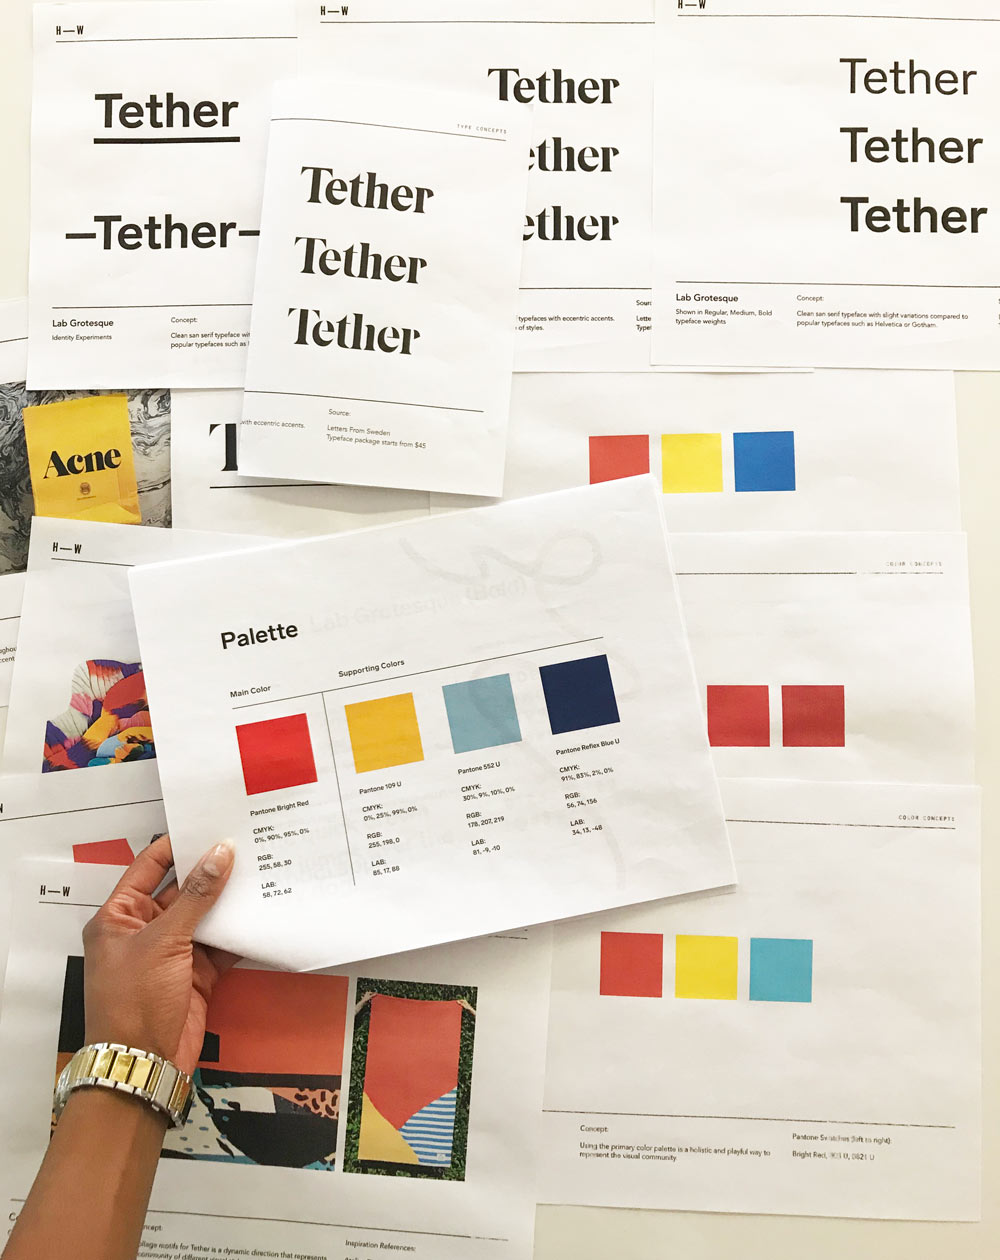 Reviewing font and color options for the Tether logo